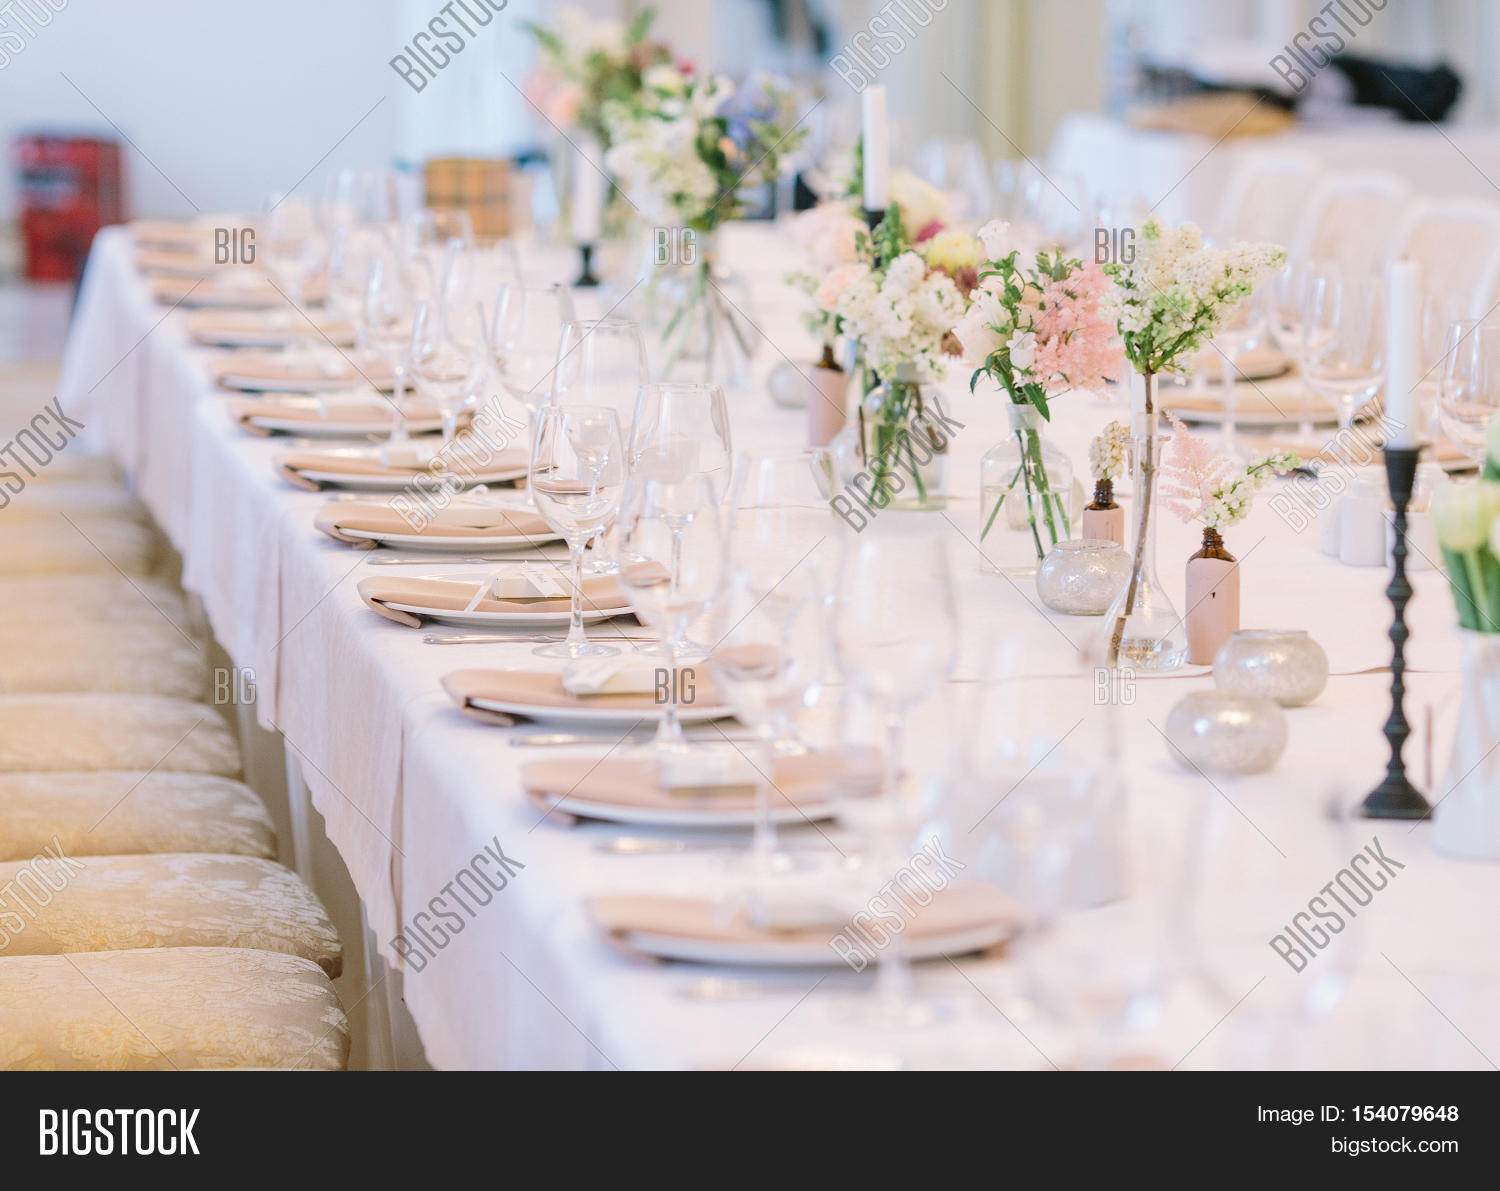 Wedding Decor. Wedding Image & Photo (Free Trial) | Bigstock